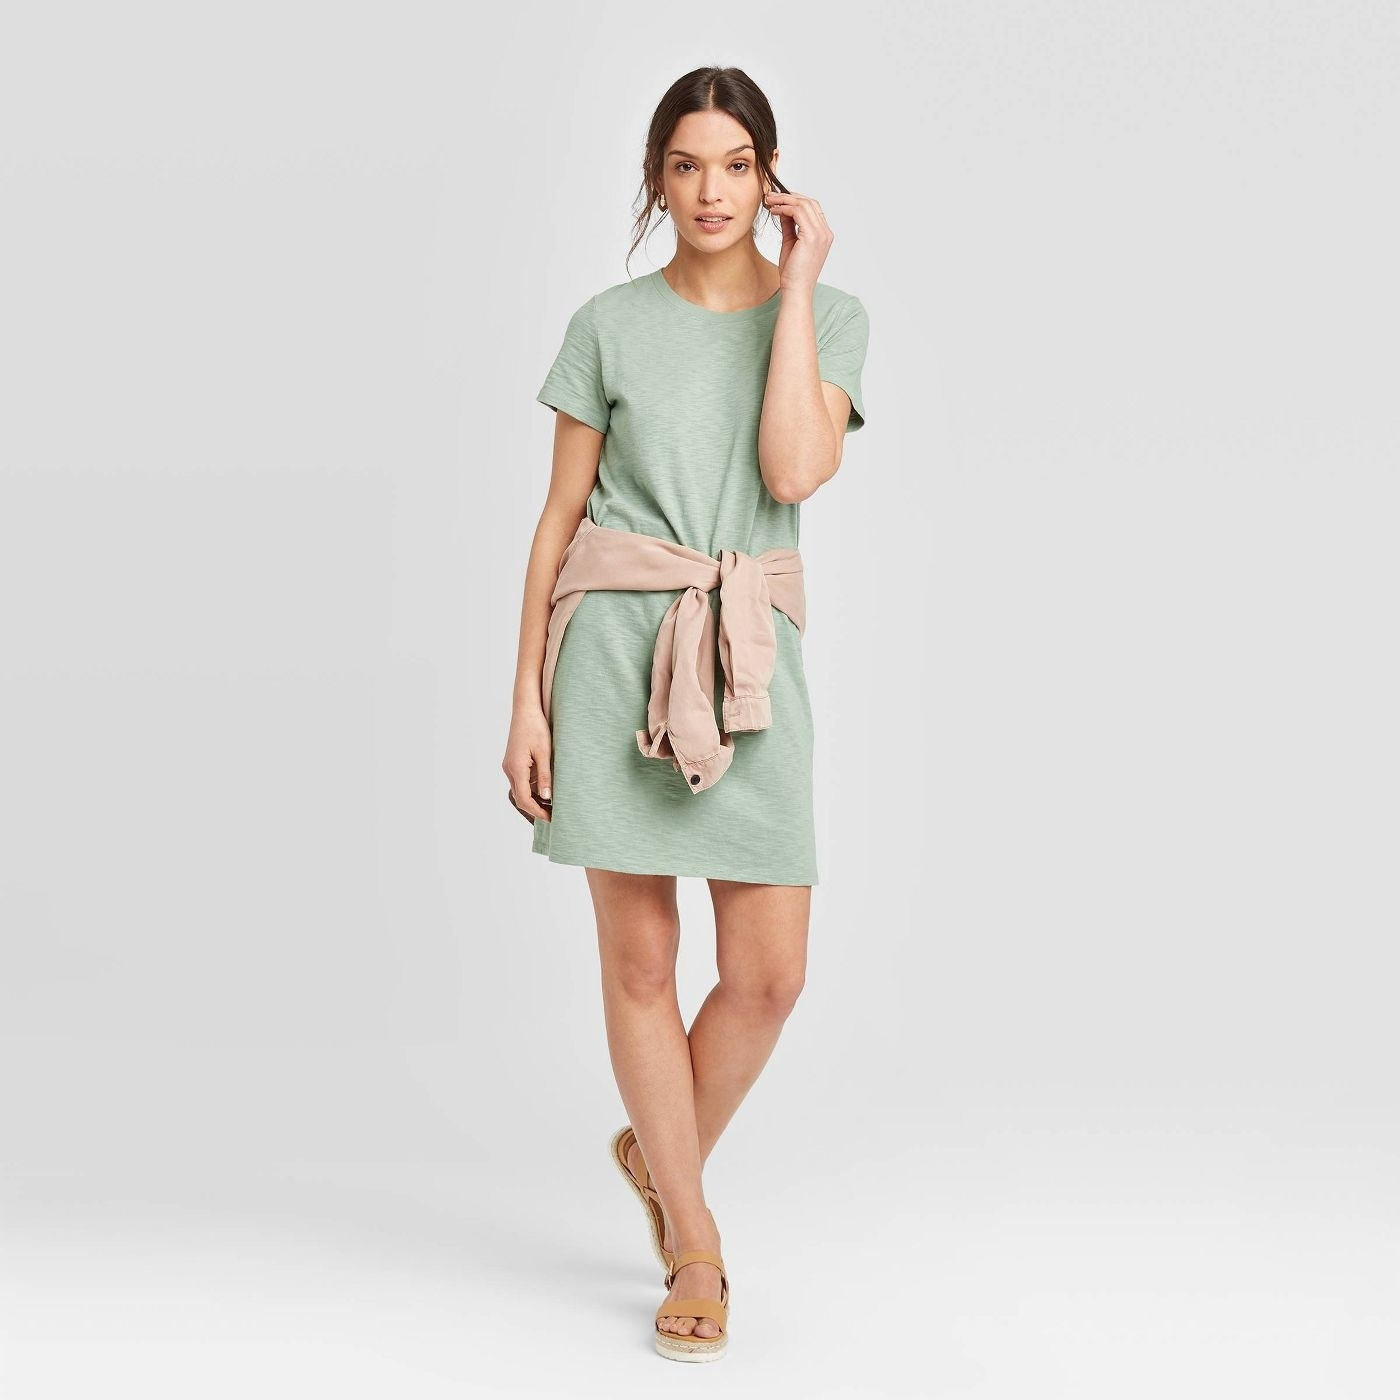 Model wearing green dress, stops above the ankle